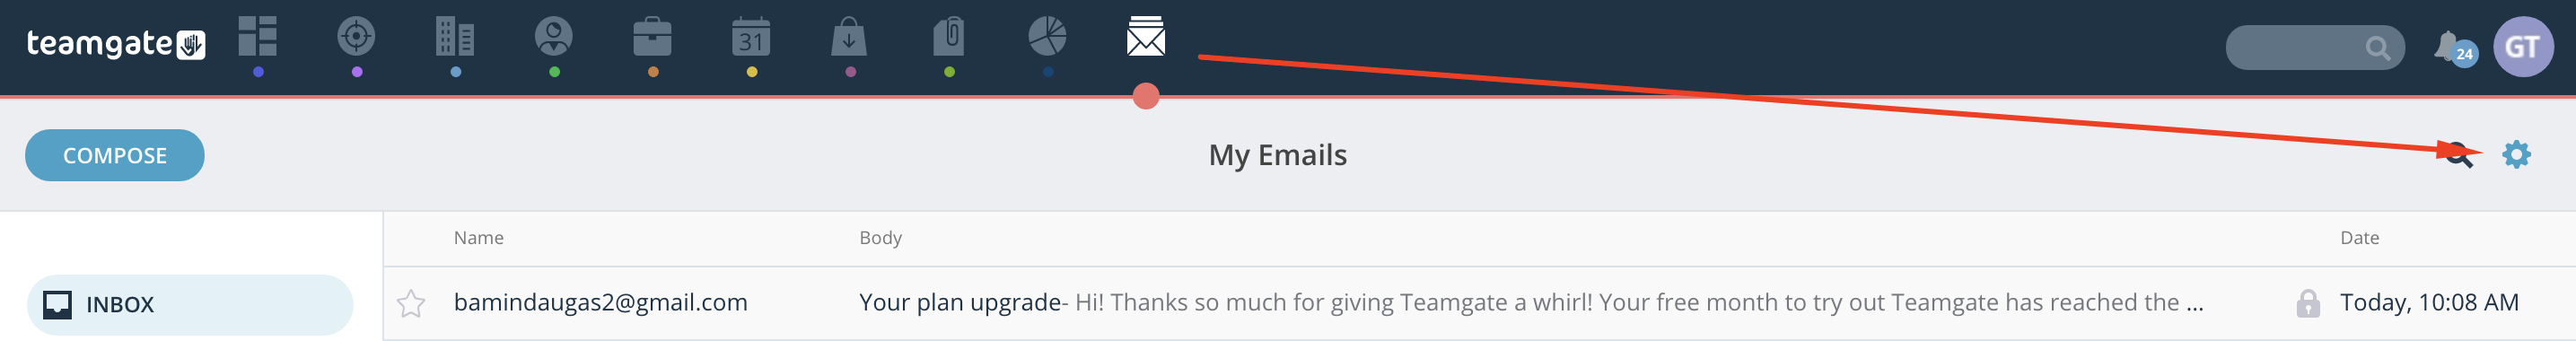 Mail-section-settings-button-Teamgate-CRM.png